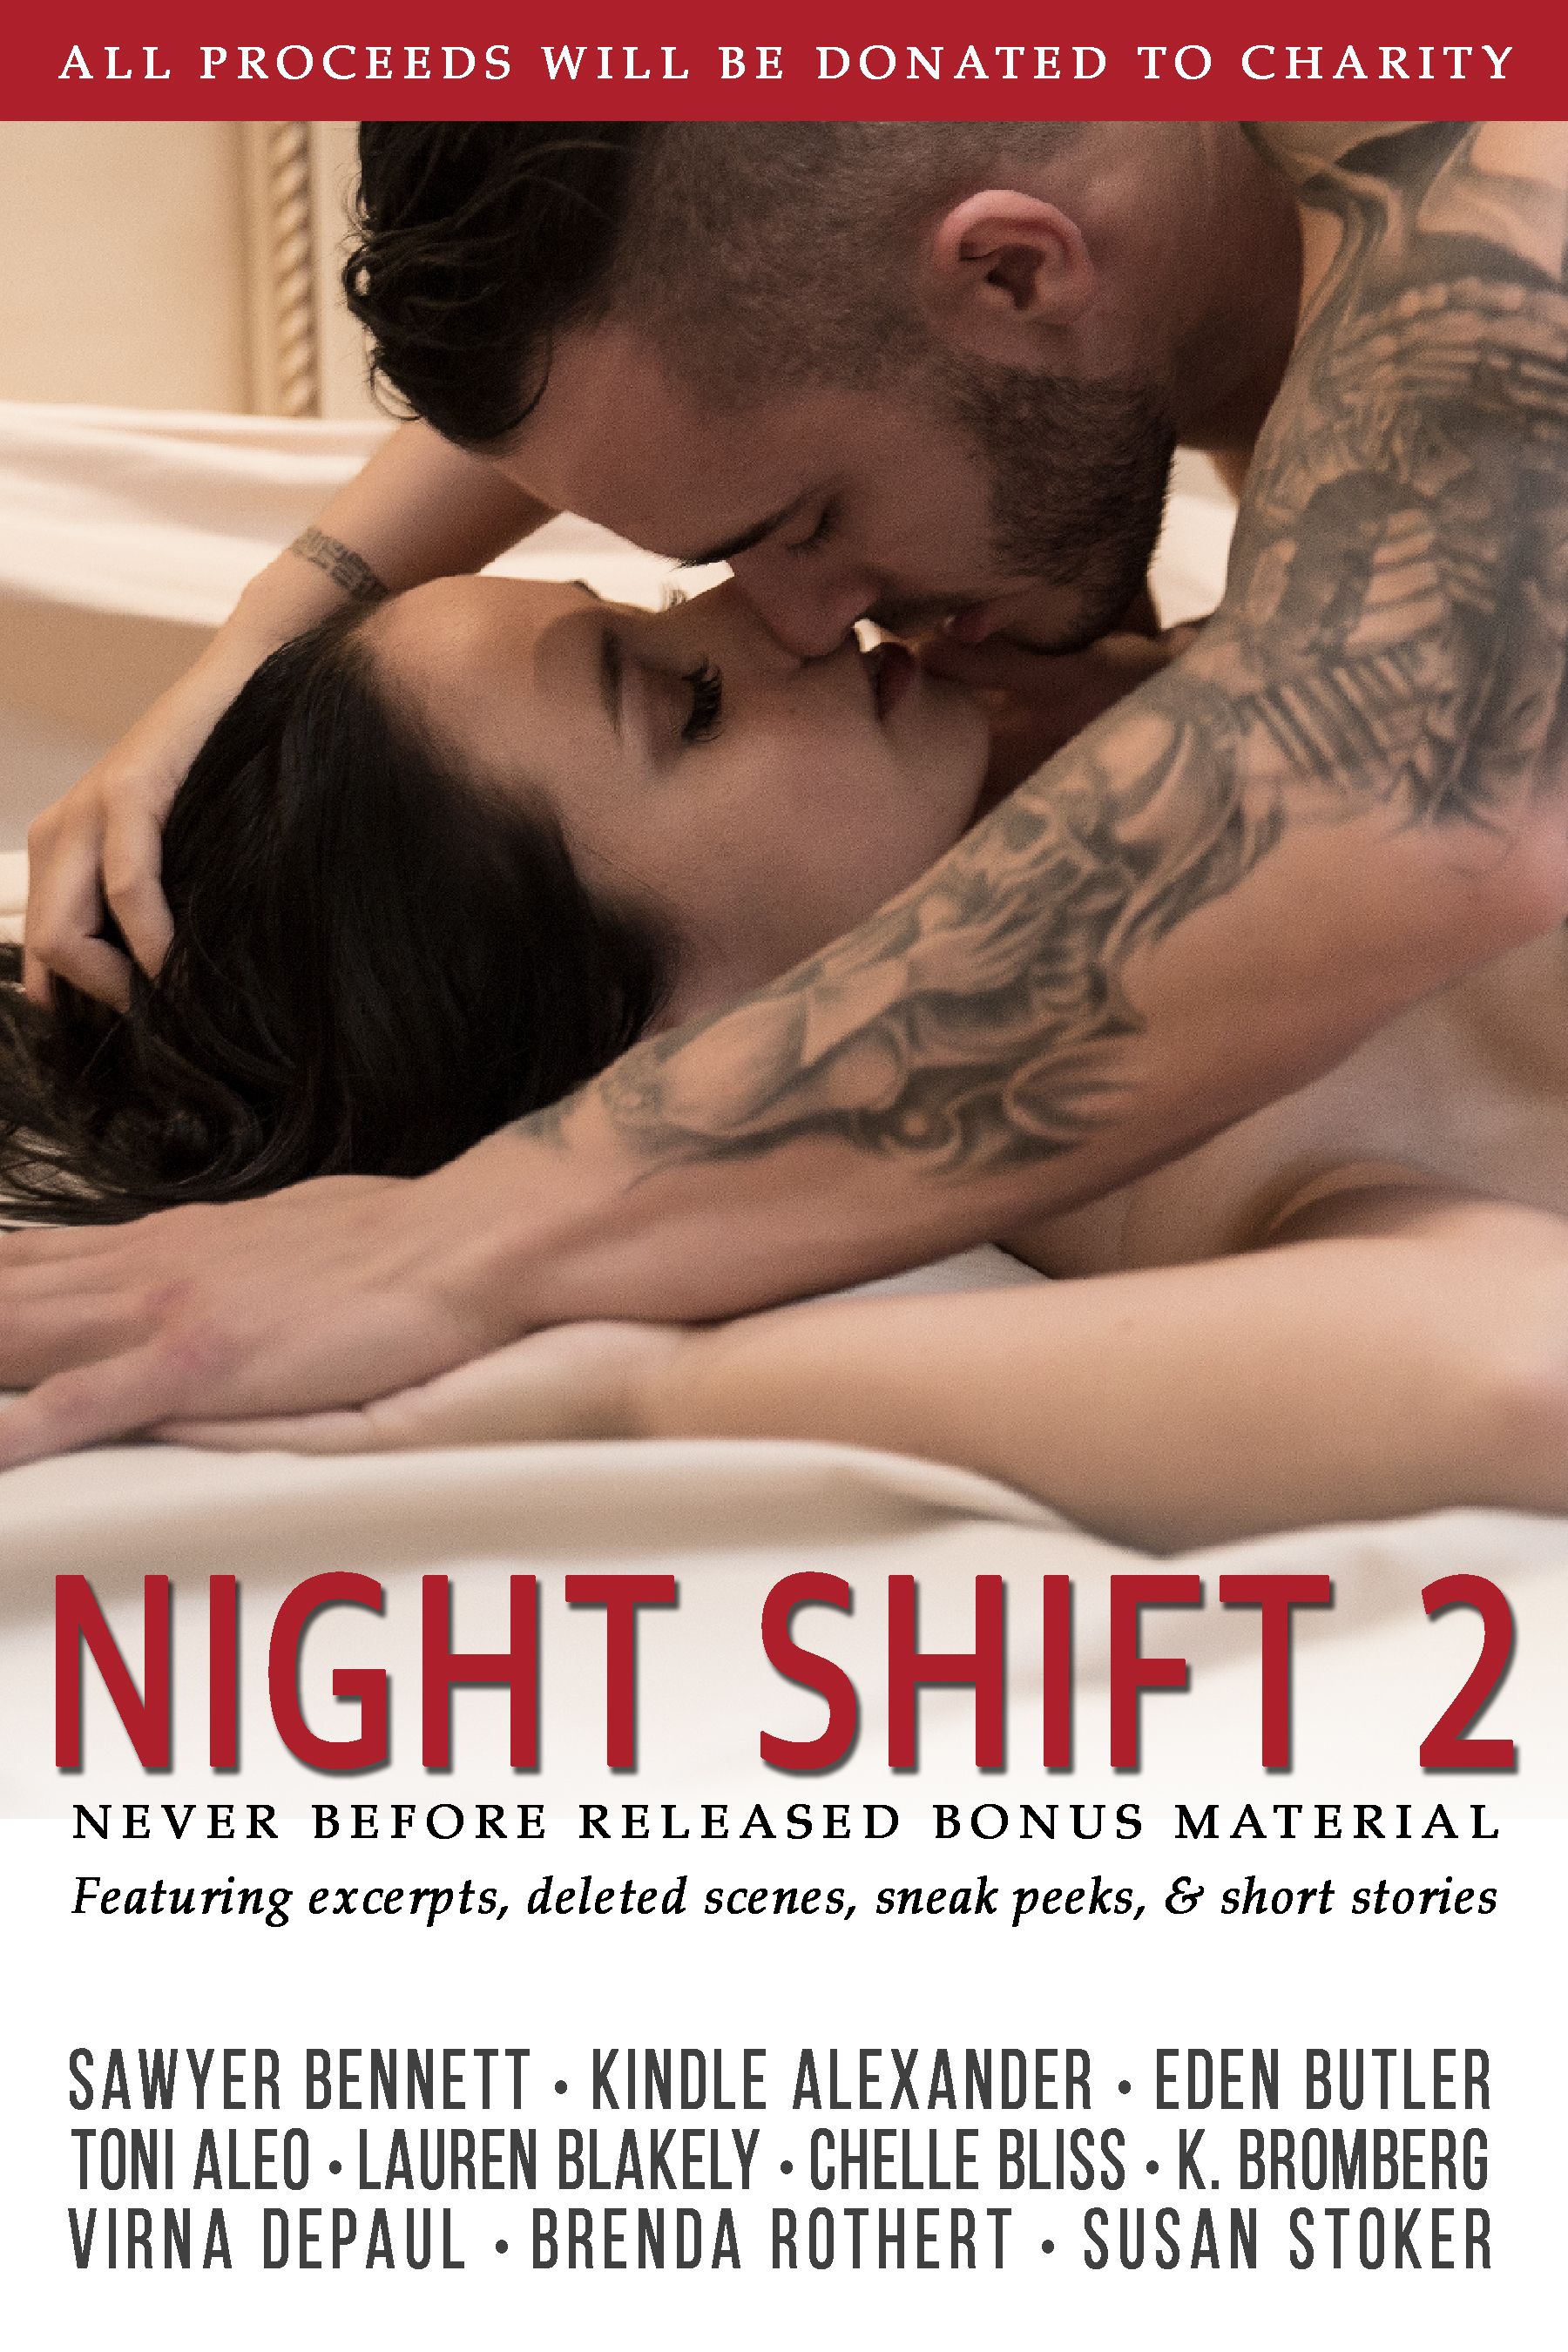 Night Shift 2 is LIVE!!!